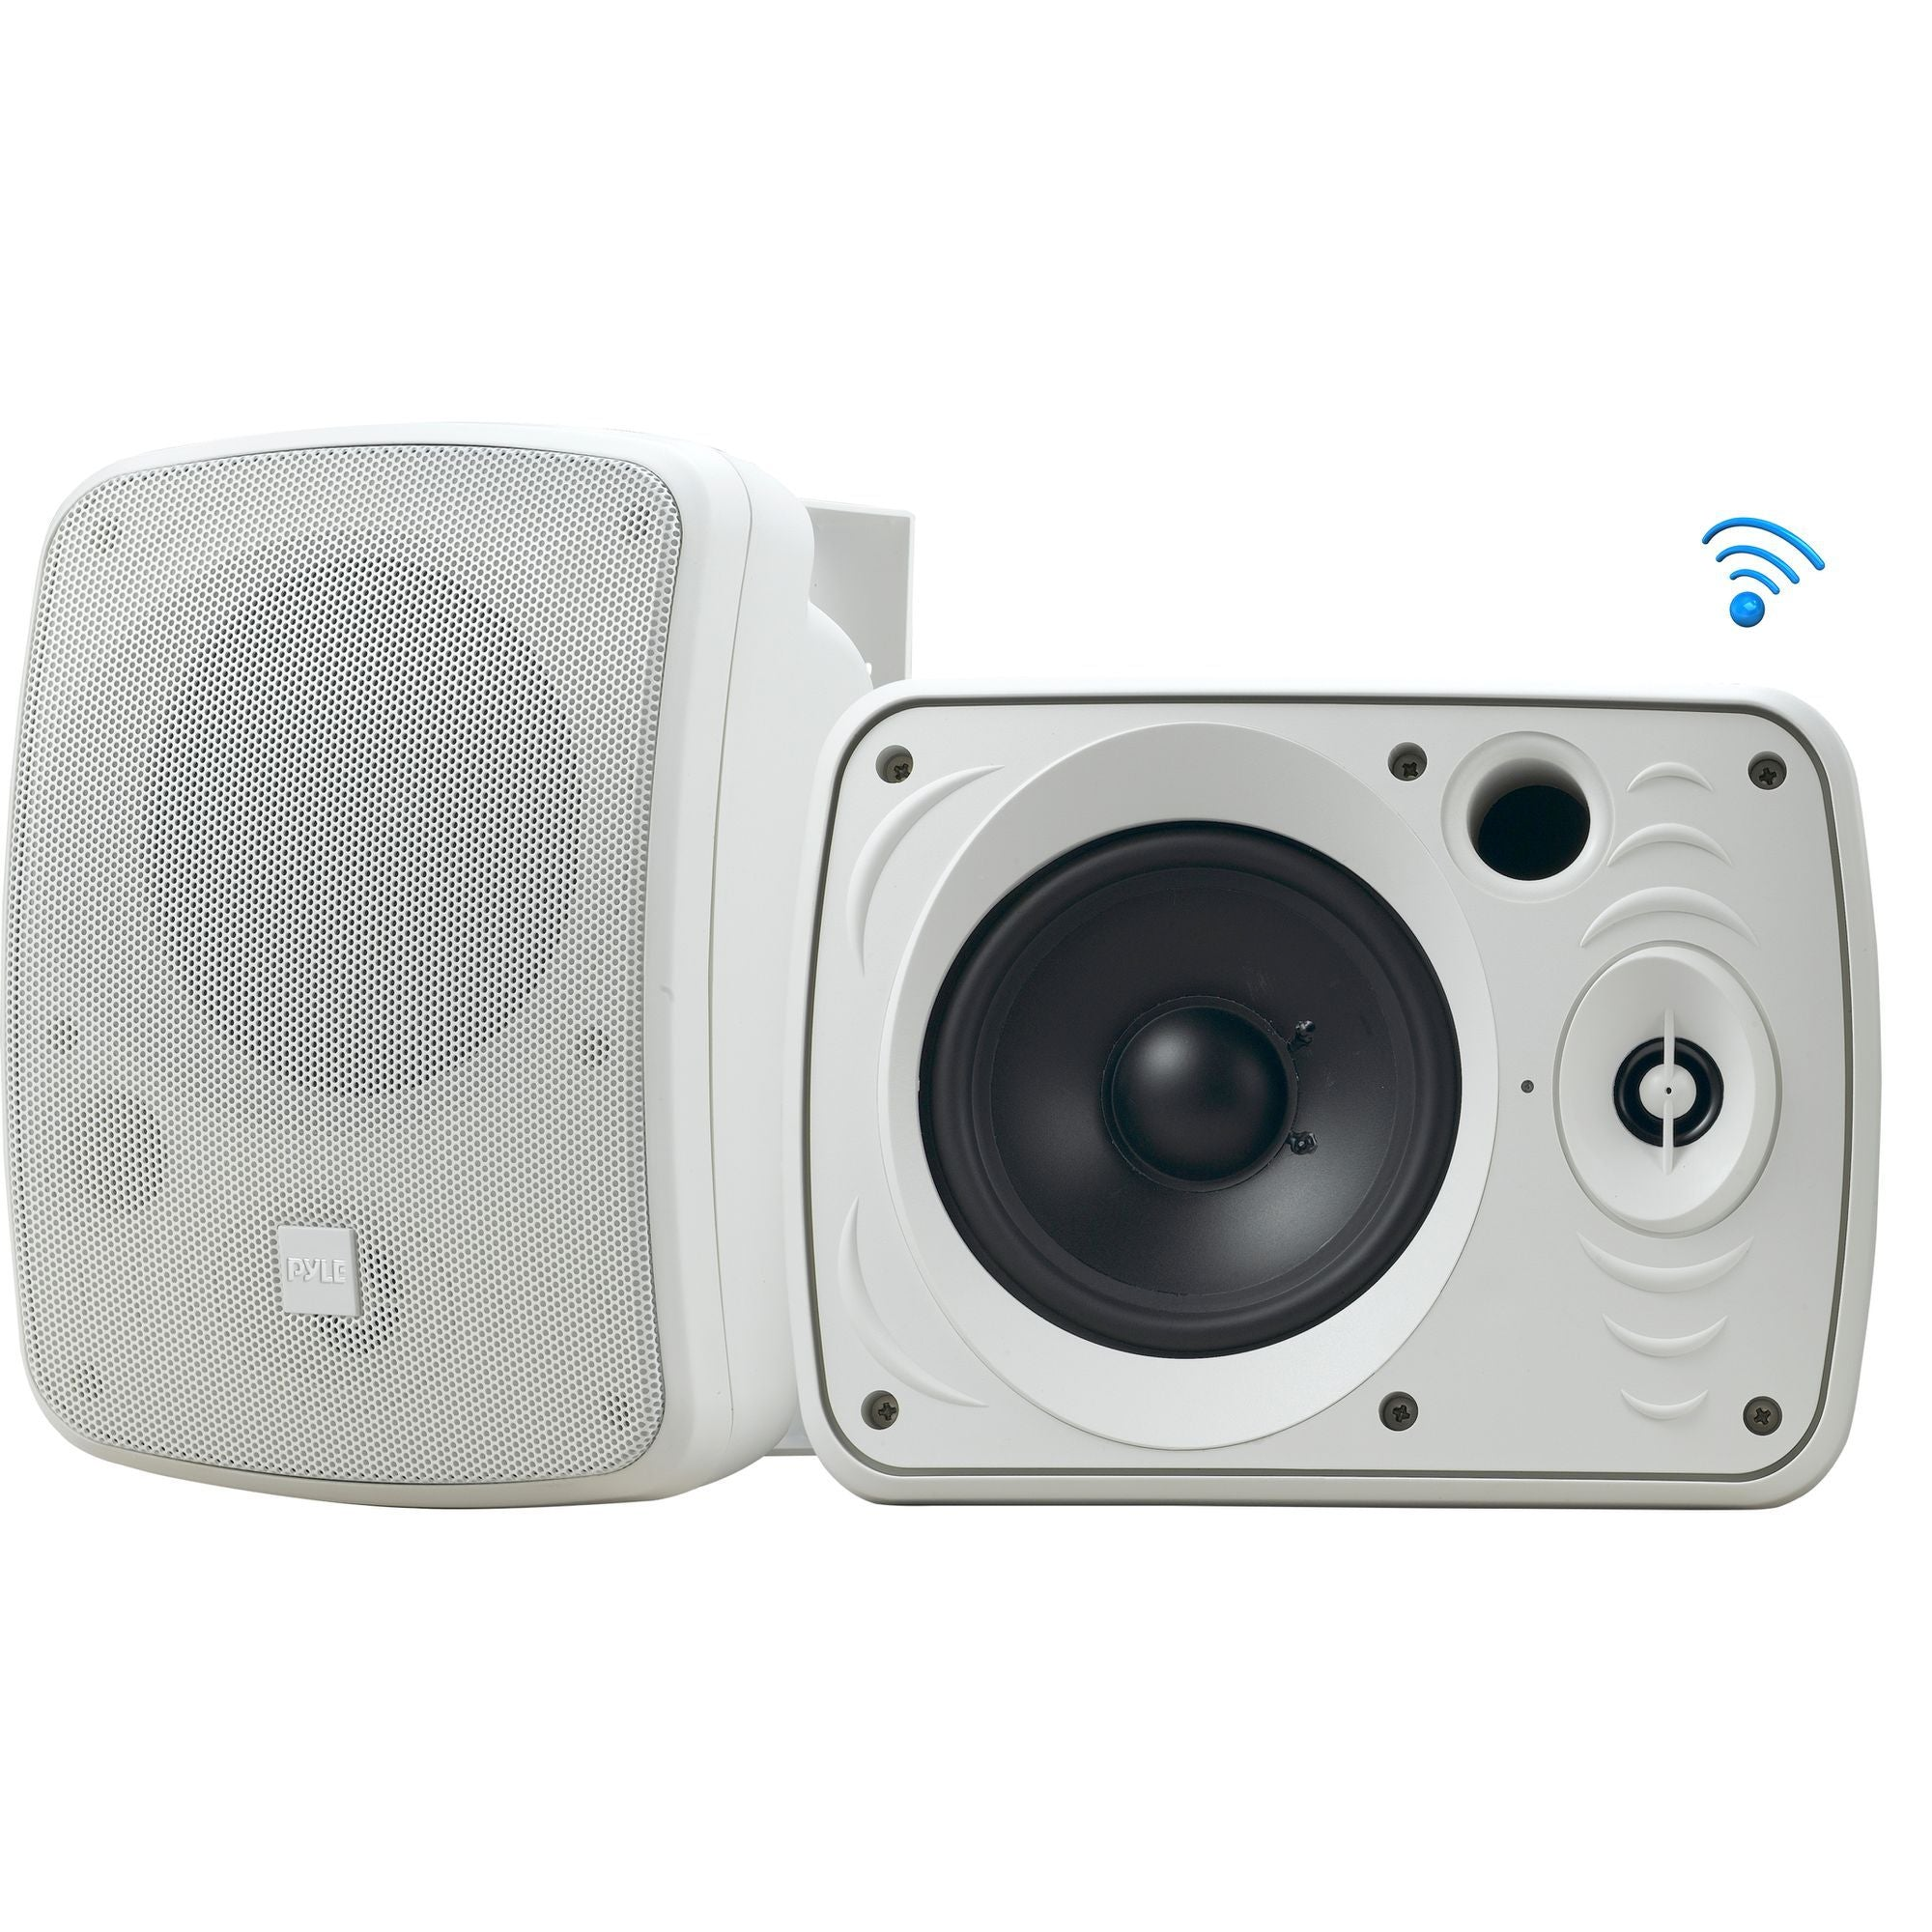 Pyle Bluetooth Dual Wall Mount Speakers, Indoor/Outdoor, Waterproof IP-X4 Ratin, 2-Way Stereo Sound - White (PDWR55BTRFW)